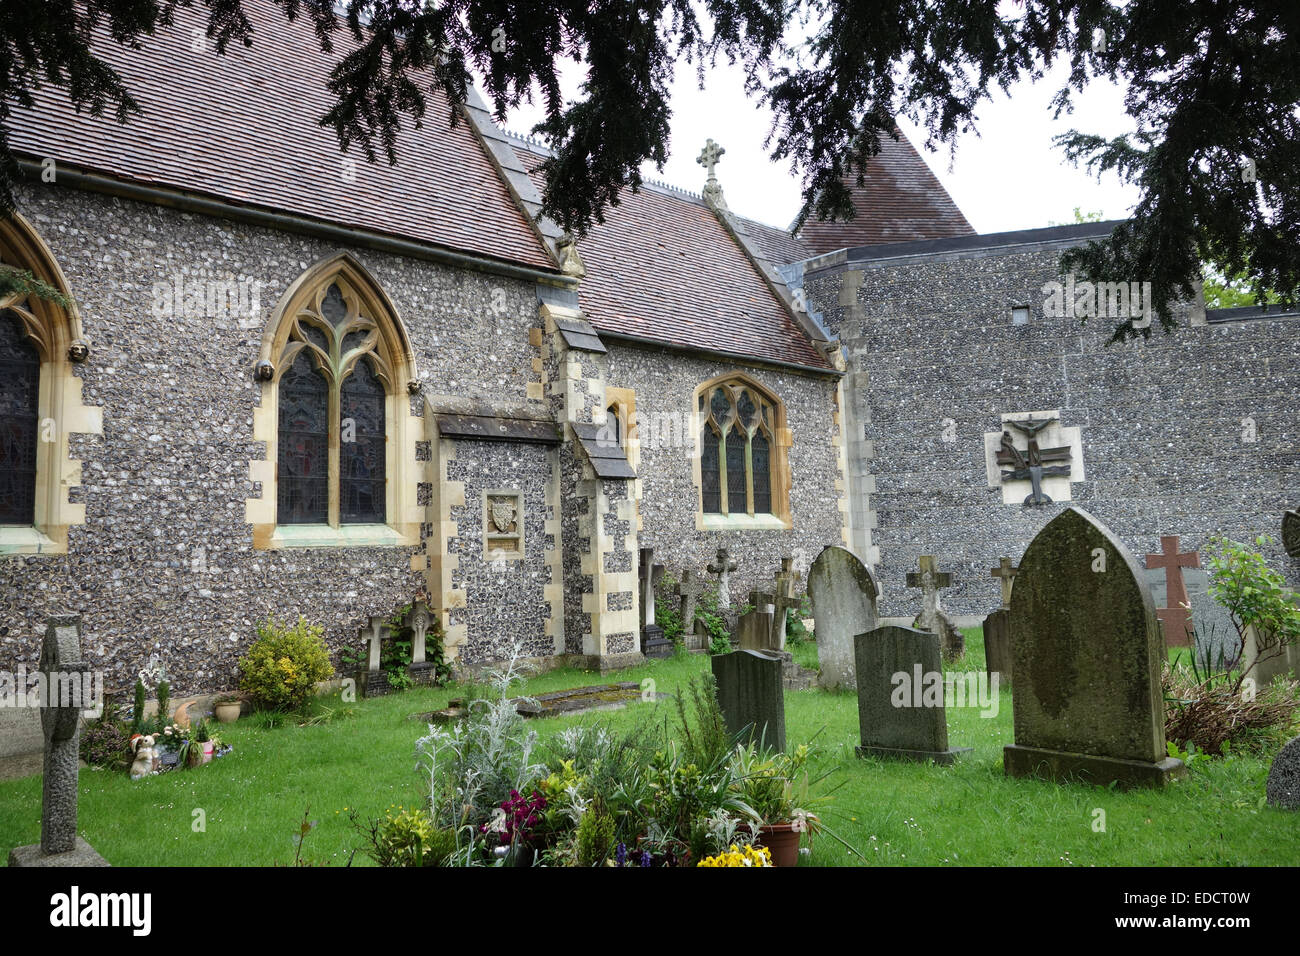 Marlow (historically Great Marlow or Chipping Marlow) is a town andcivil parish within Wycombe district in south Stock Photo